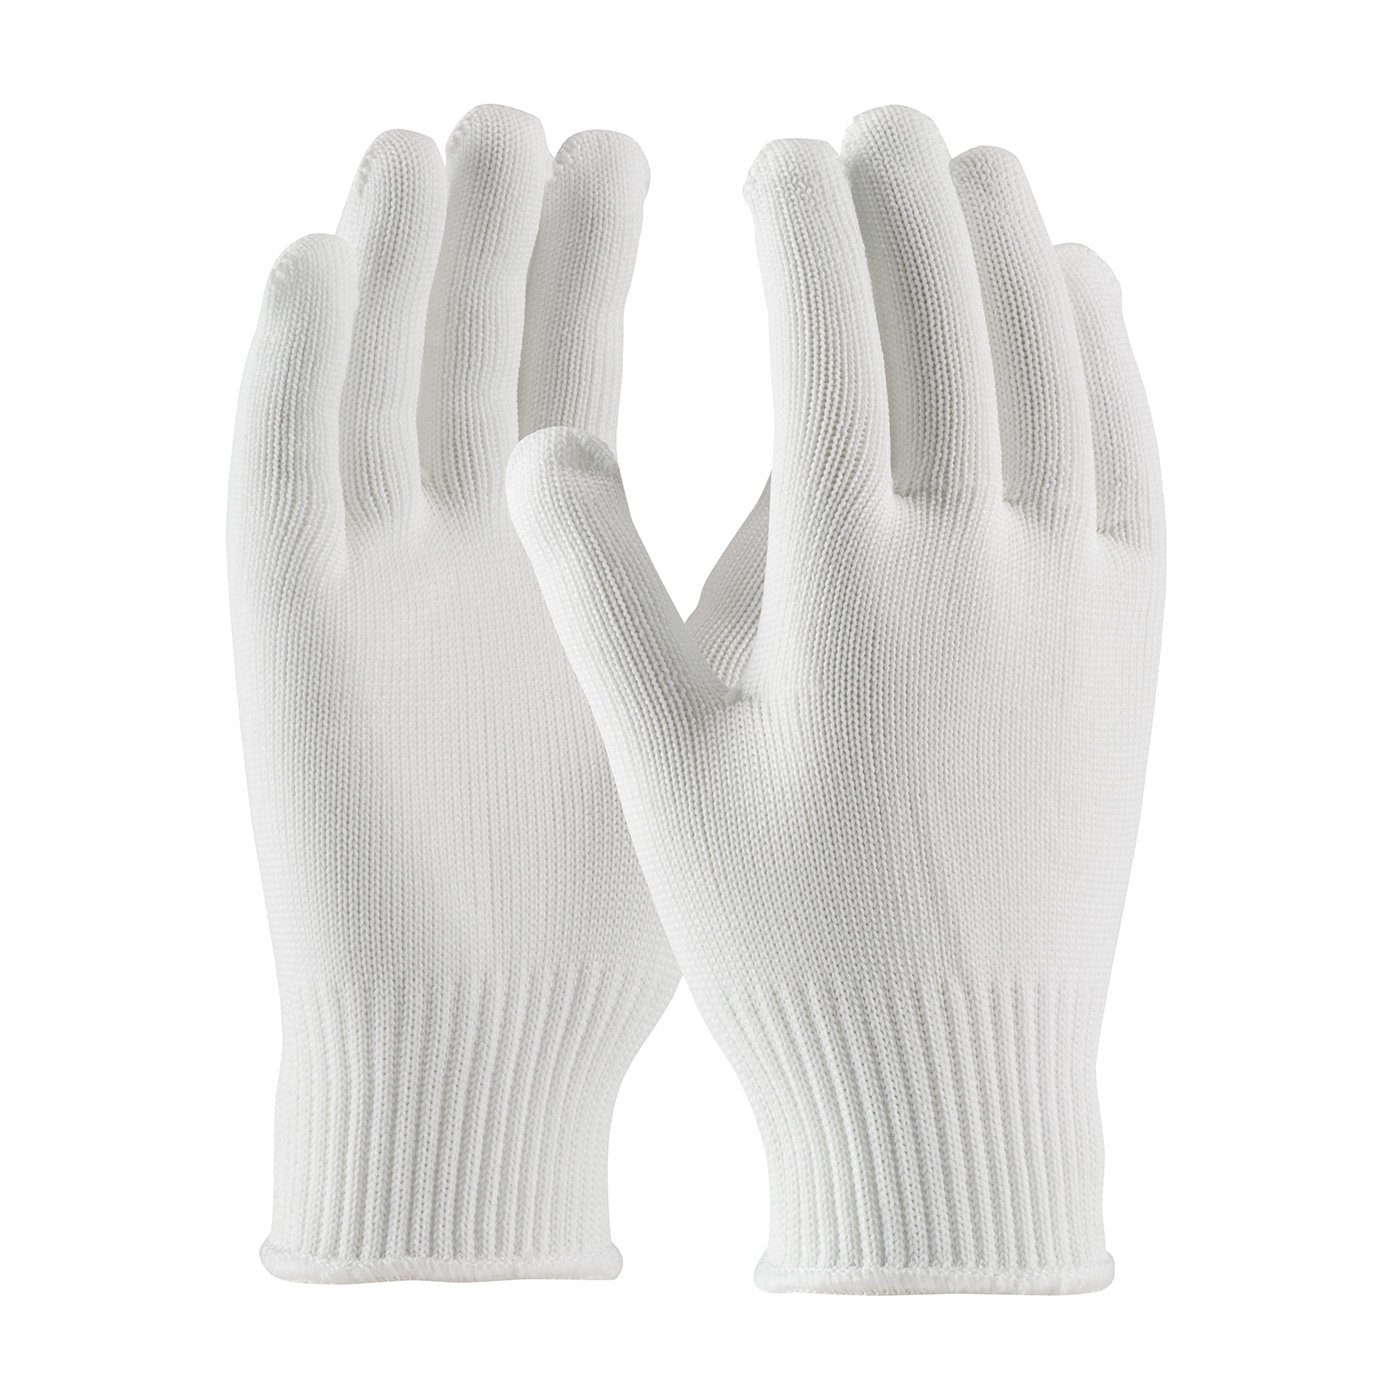 CleanTeam 40-C2210/L Medium Weight Seamless Knit Stretch Polyester Clean Environment Glove, 10 Gauge